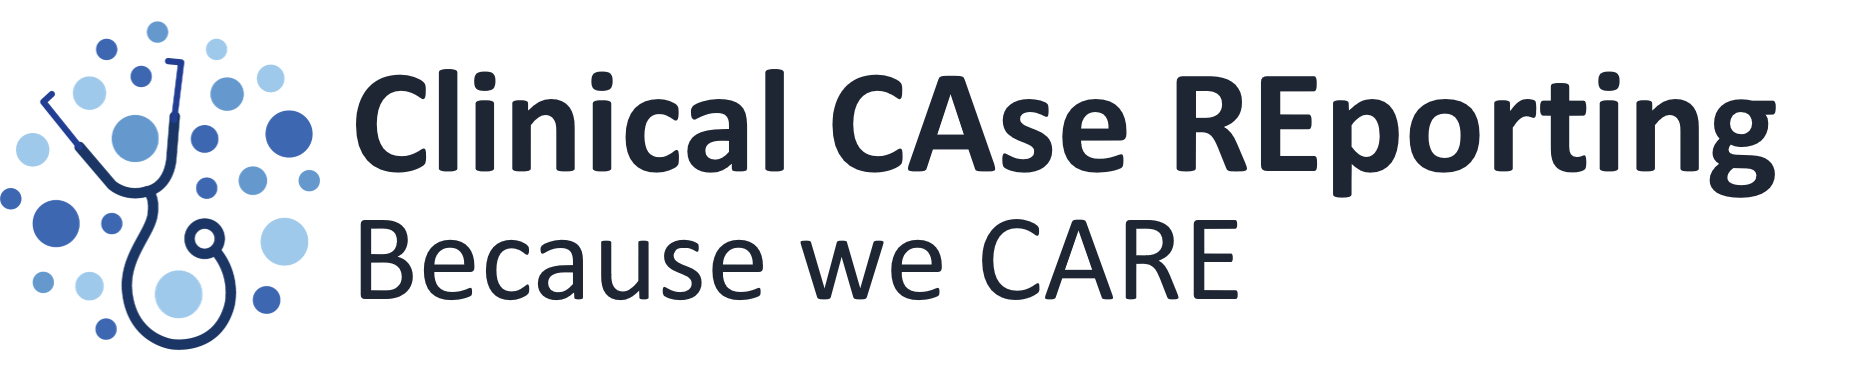 Clinical Case Reporting